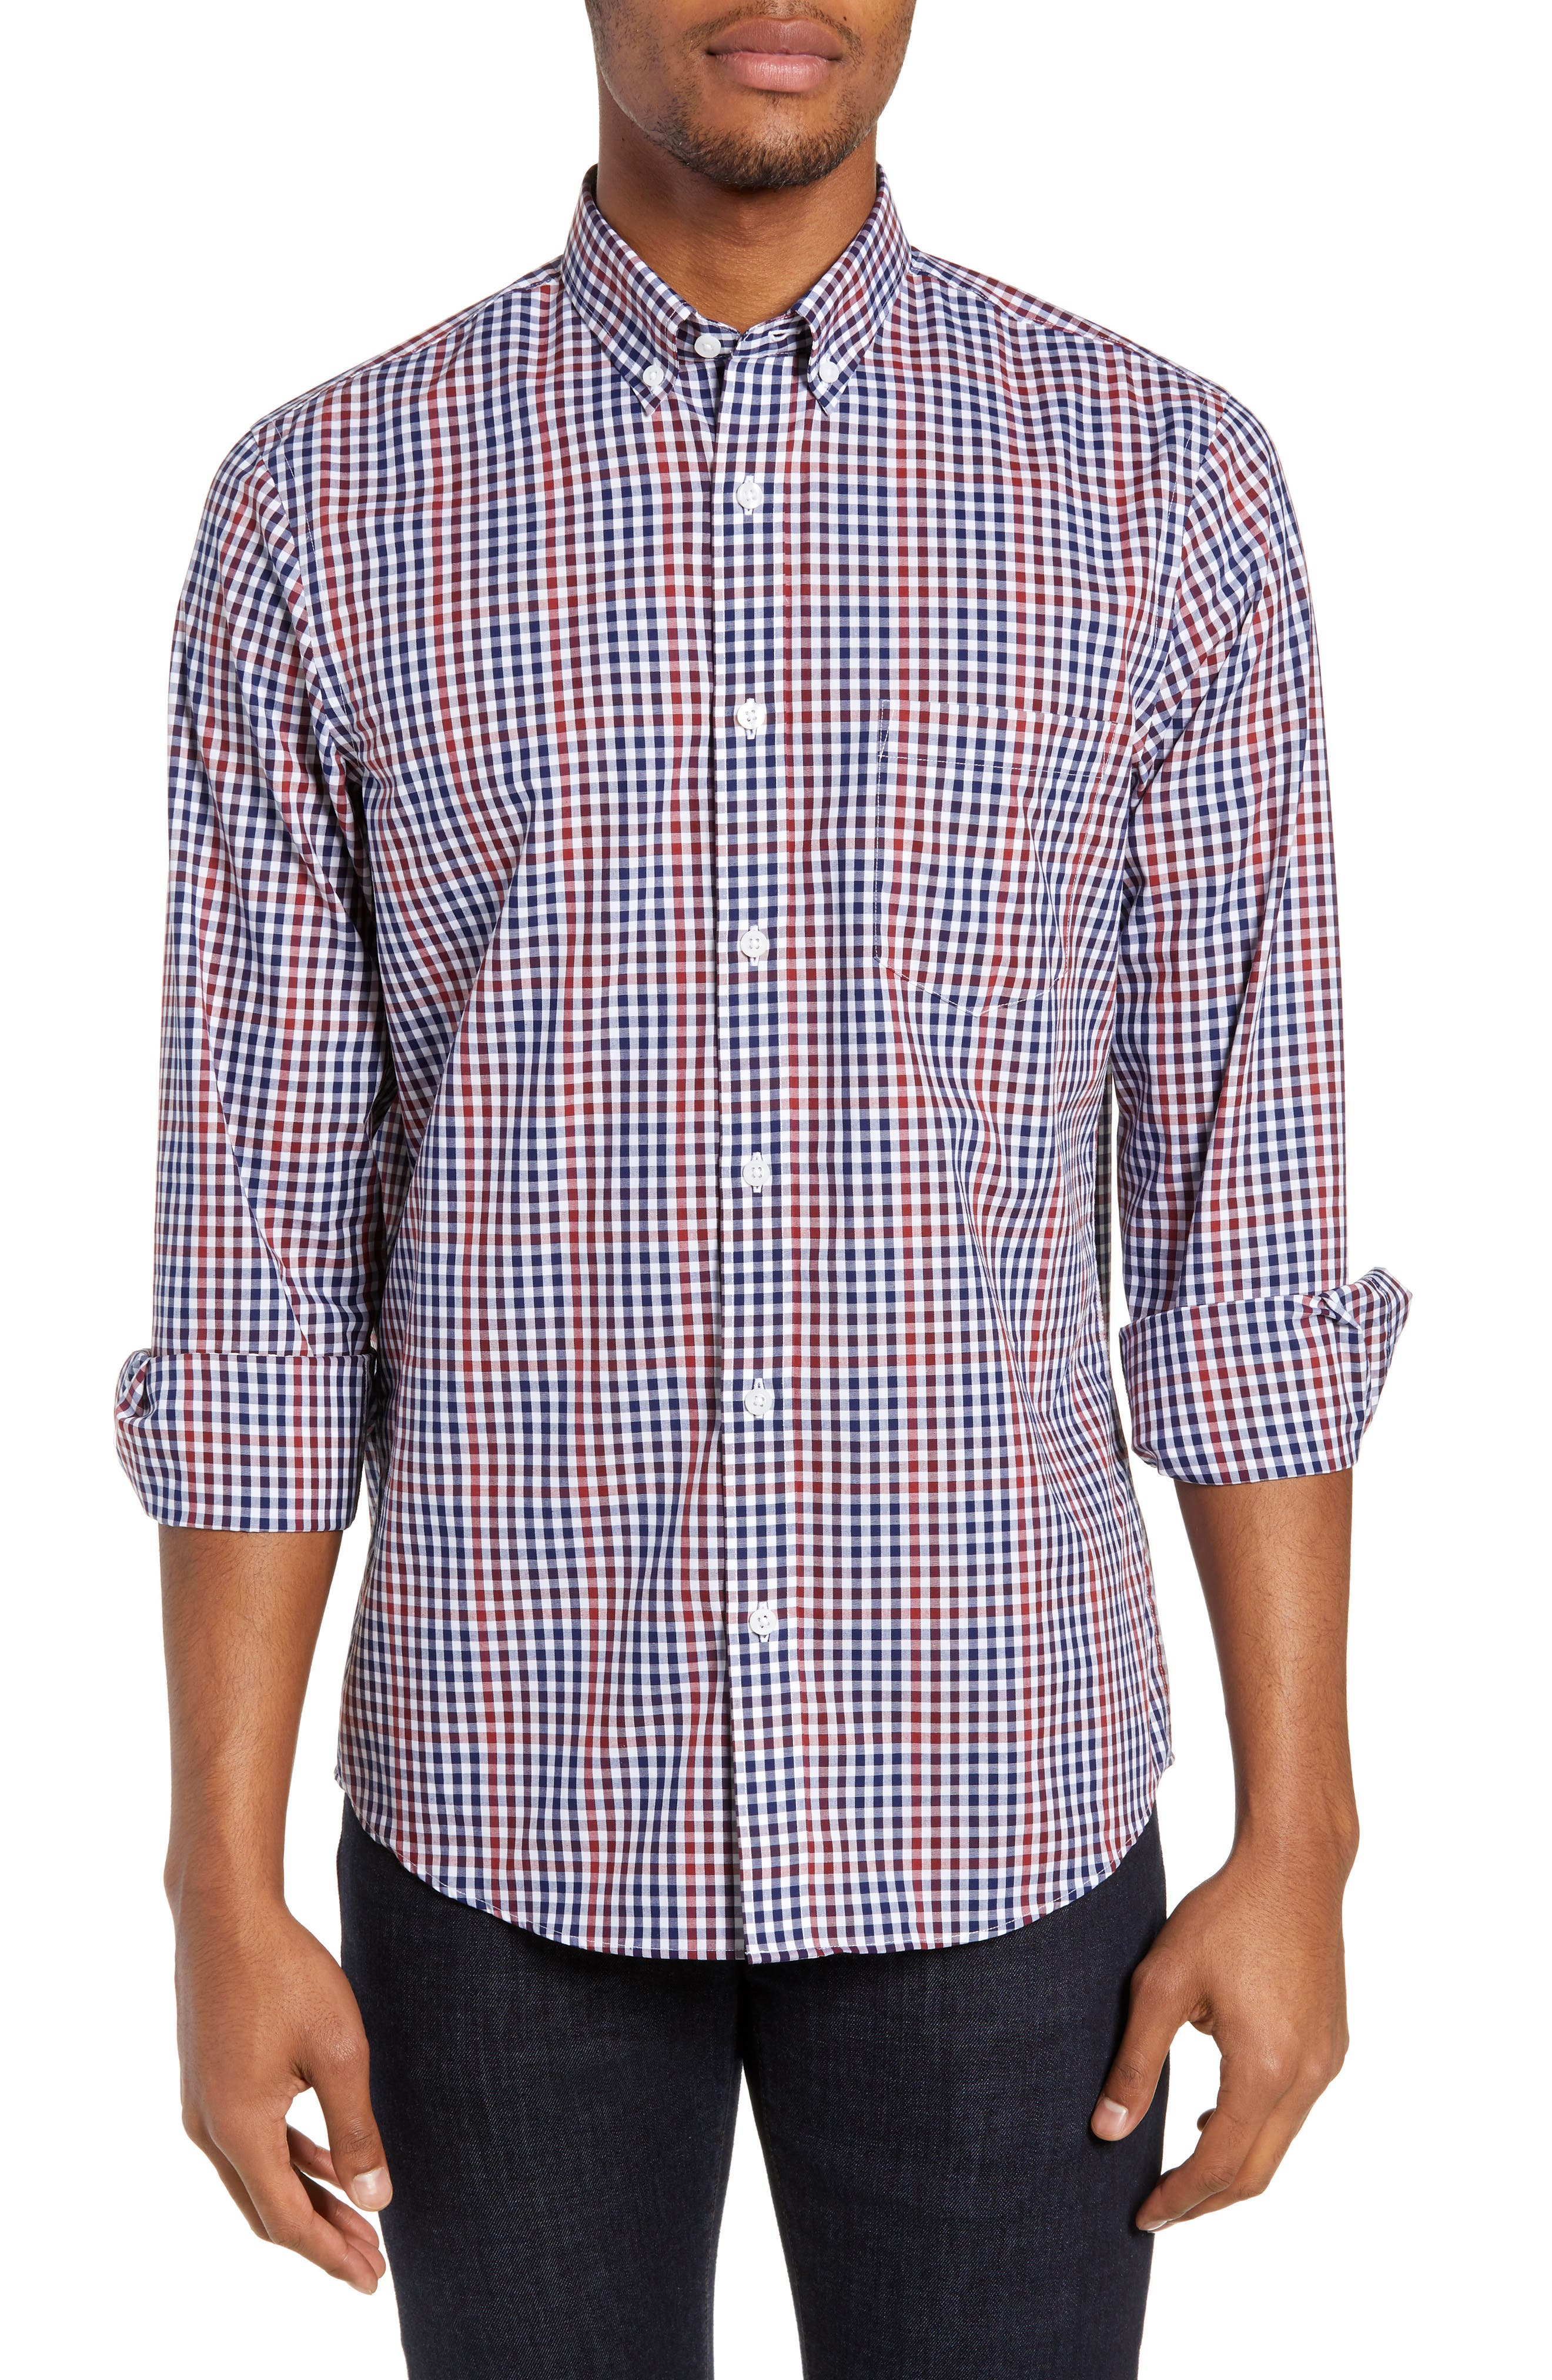 NORDSTROM MEN'S SHOP Slim Fit Non-Iron Gingham Sport Shirt, Main, color, 610